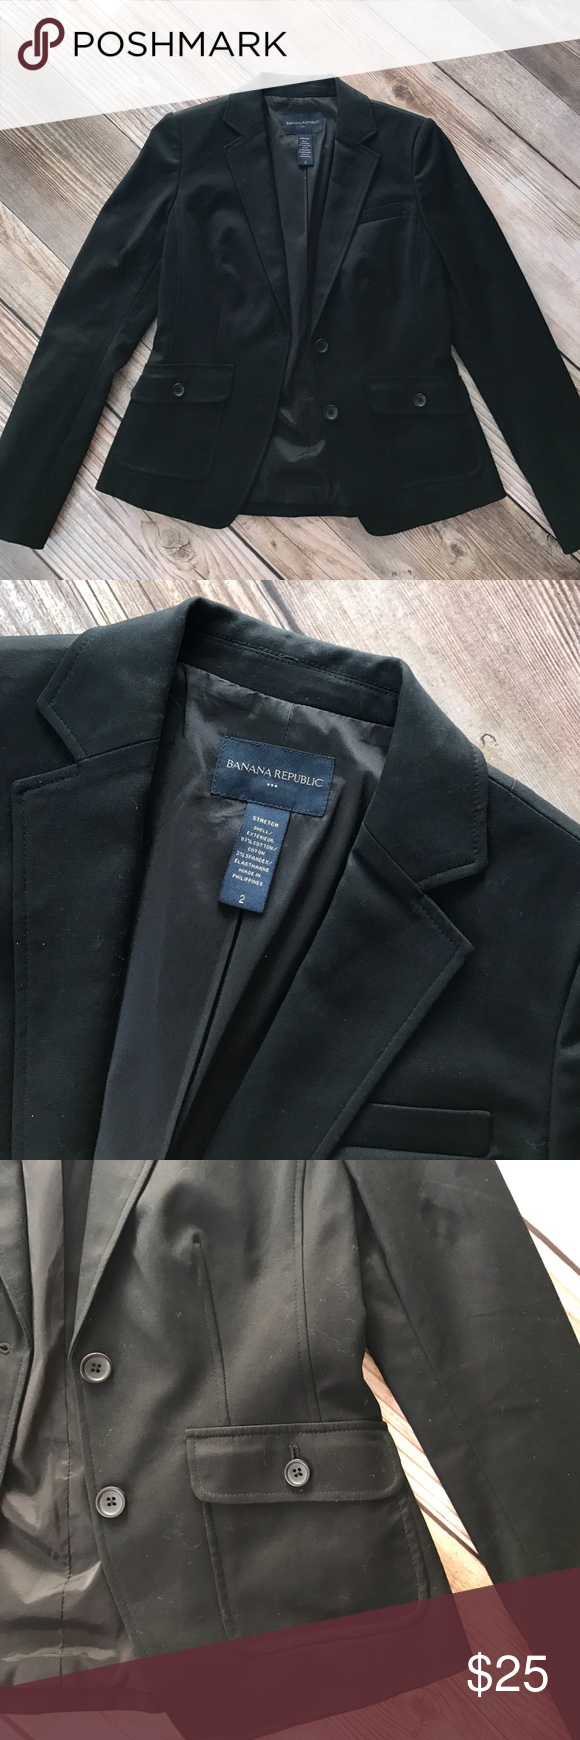 Banana Republic Blazer I may have only worn this blazer once or twice. It's in excellent condition and would look great with a pair of jeans and heels! Banana Republic Jackets & Coats Blazers